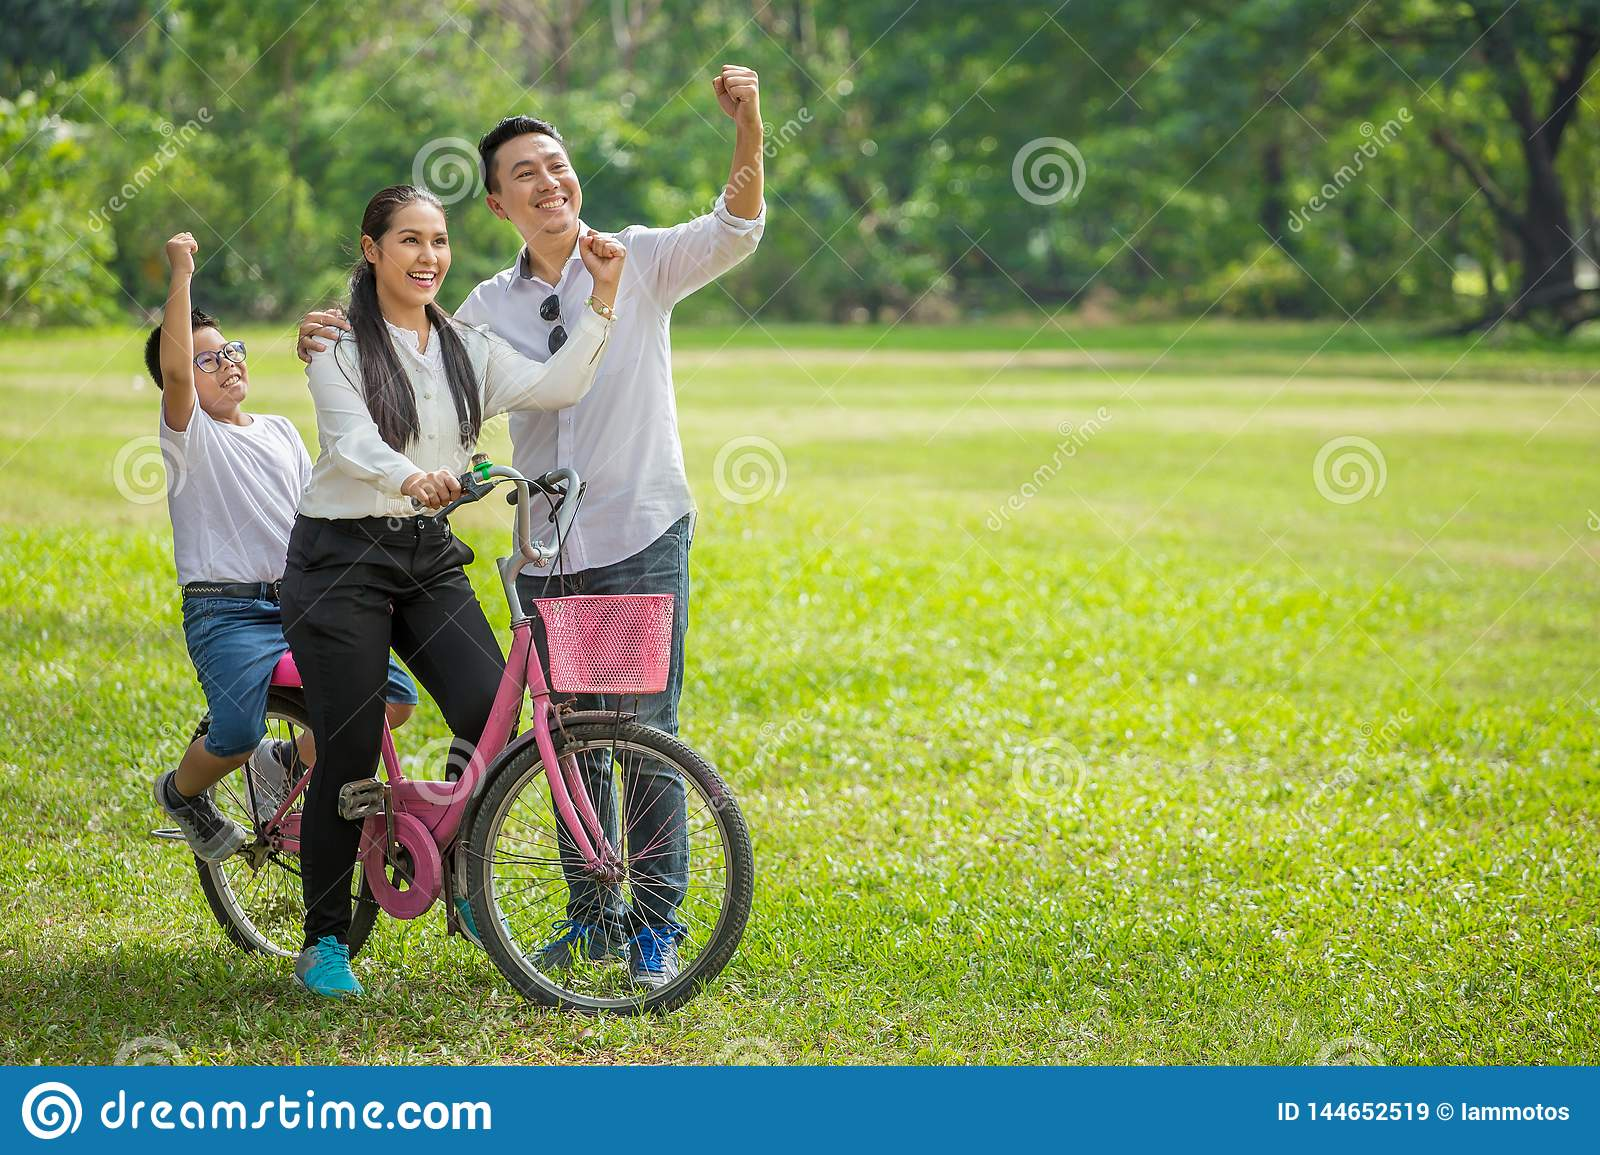 happy asian Family, parents and children riding bike hands up in park together. father ,mother ,son on bicycle having fun